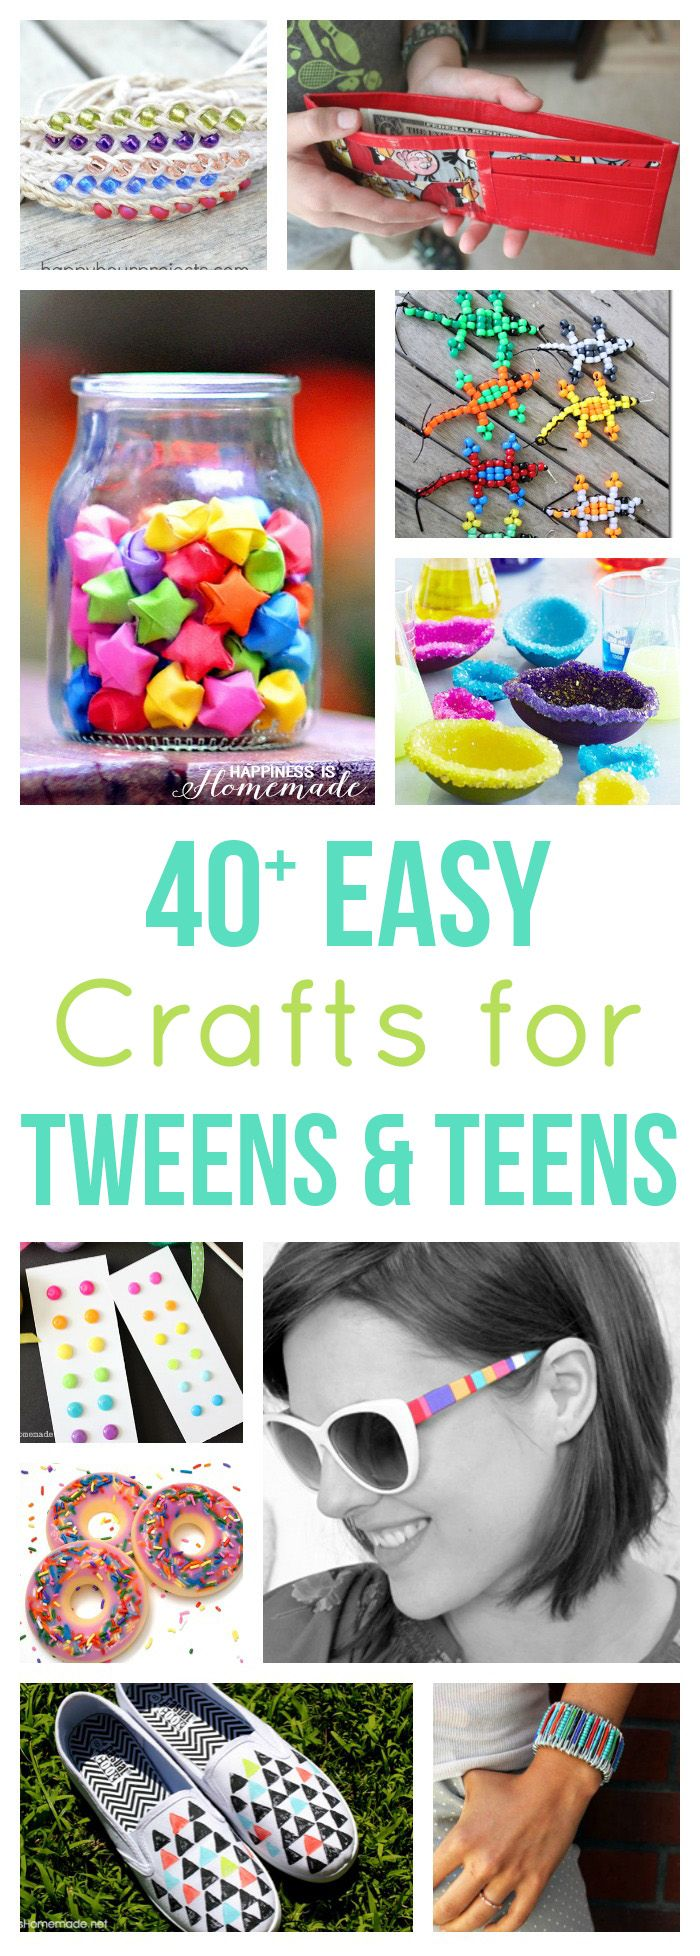 Best 25 crafts for teens ideas only on pinterest diy for Diy projects for tweens